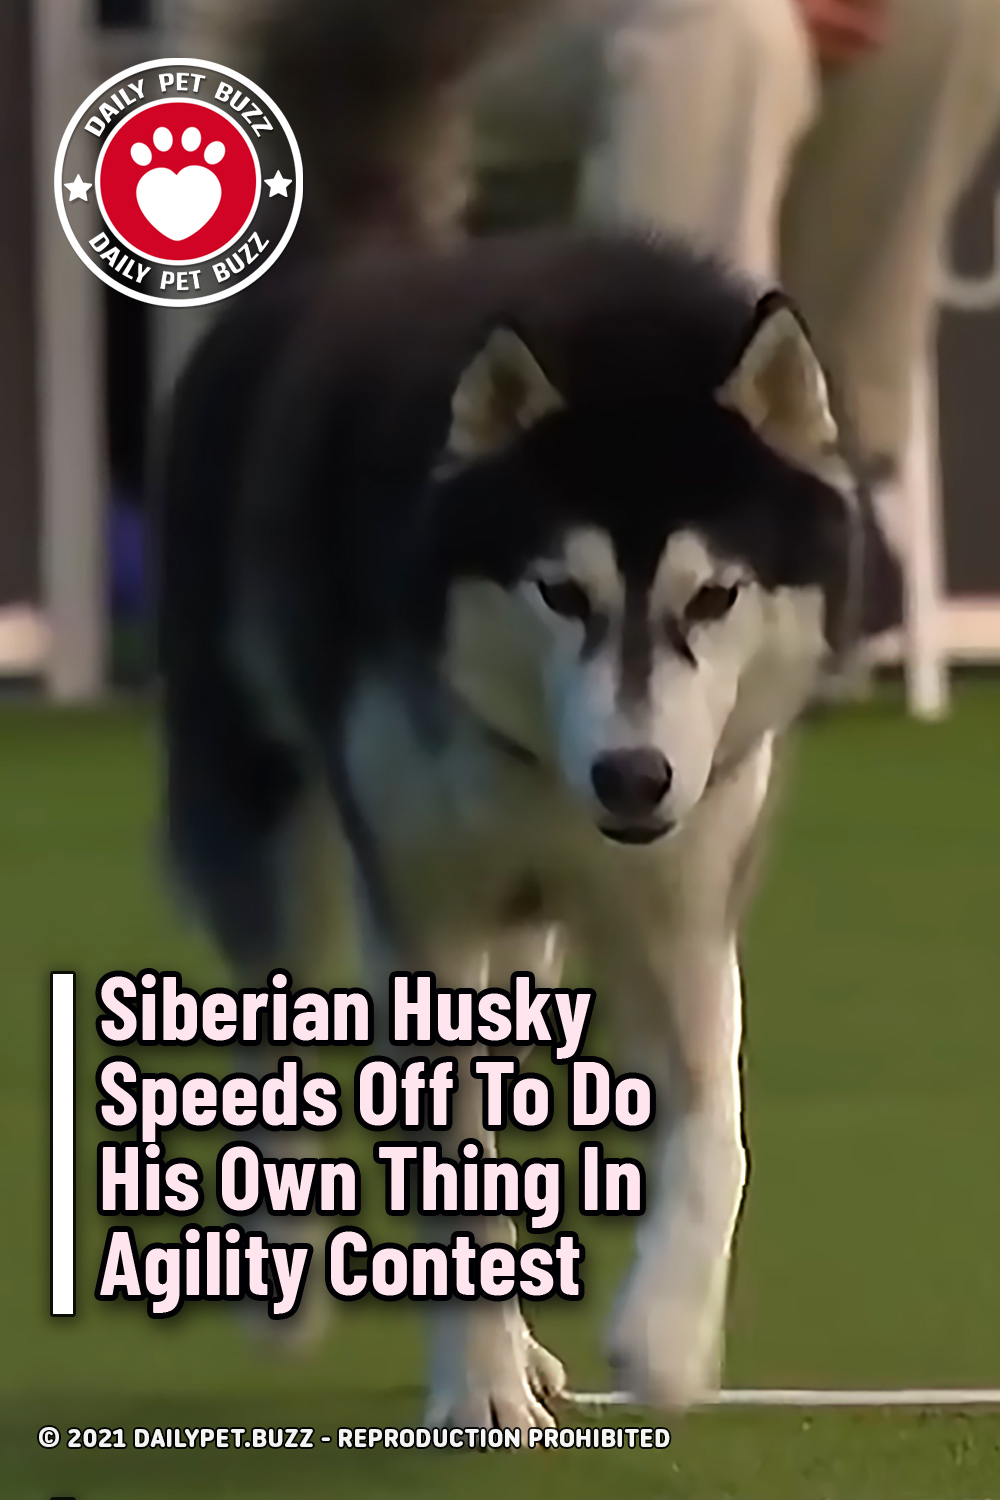 Siberian Husky Speeds Off To Do His Own Thing In Agility Contest